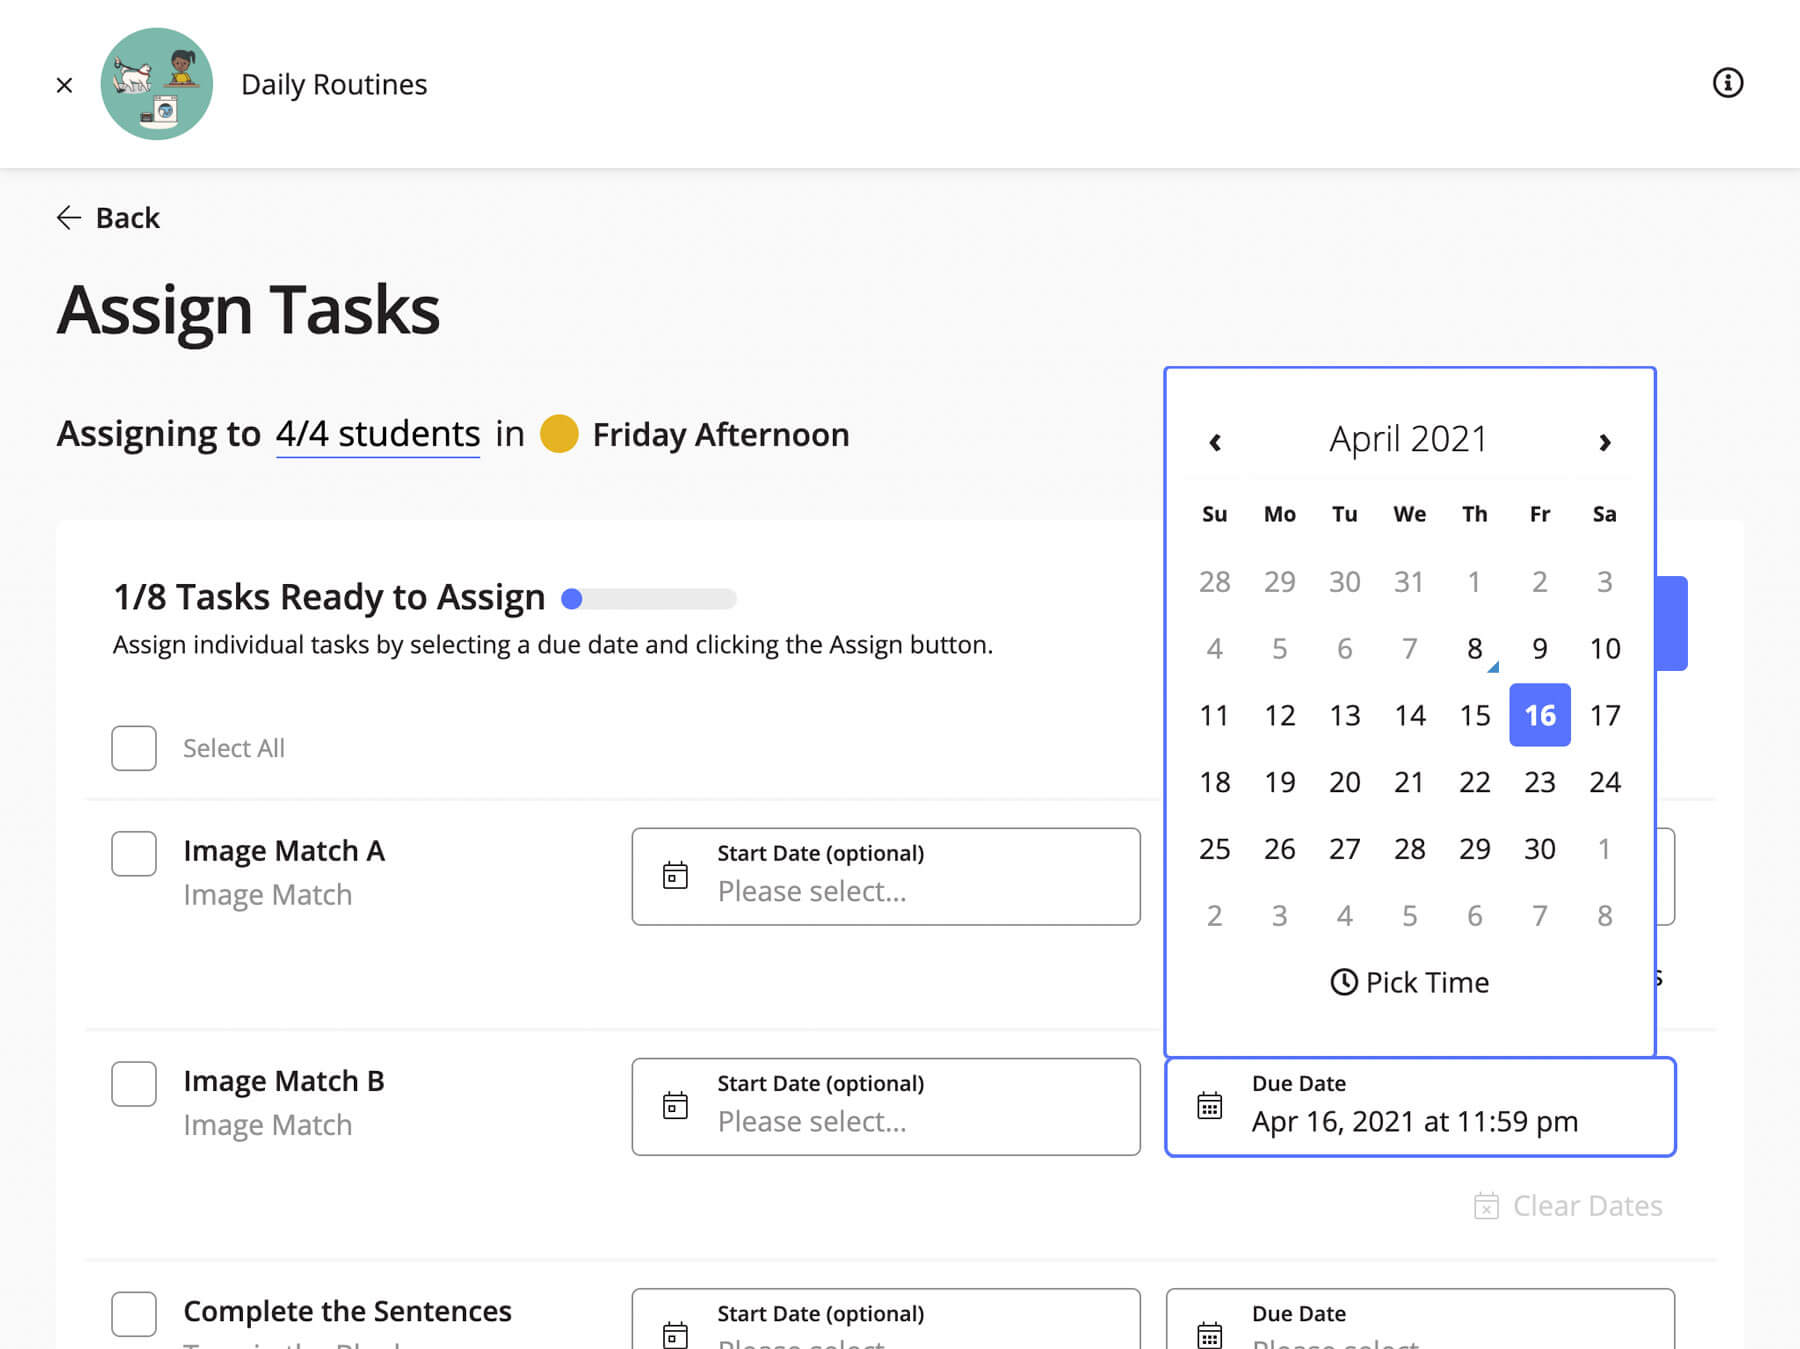 A screenshot of part of the task assignment process. A teacher is selecting a due date for an image matching task for their Friday Afternoon class.